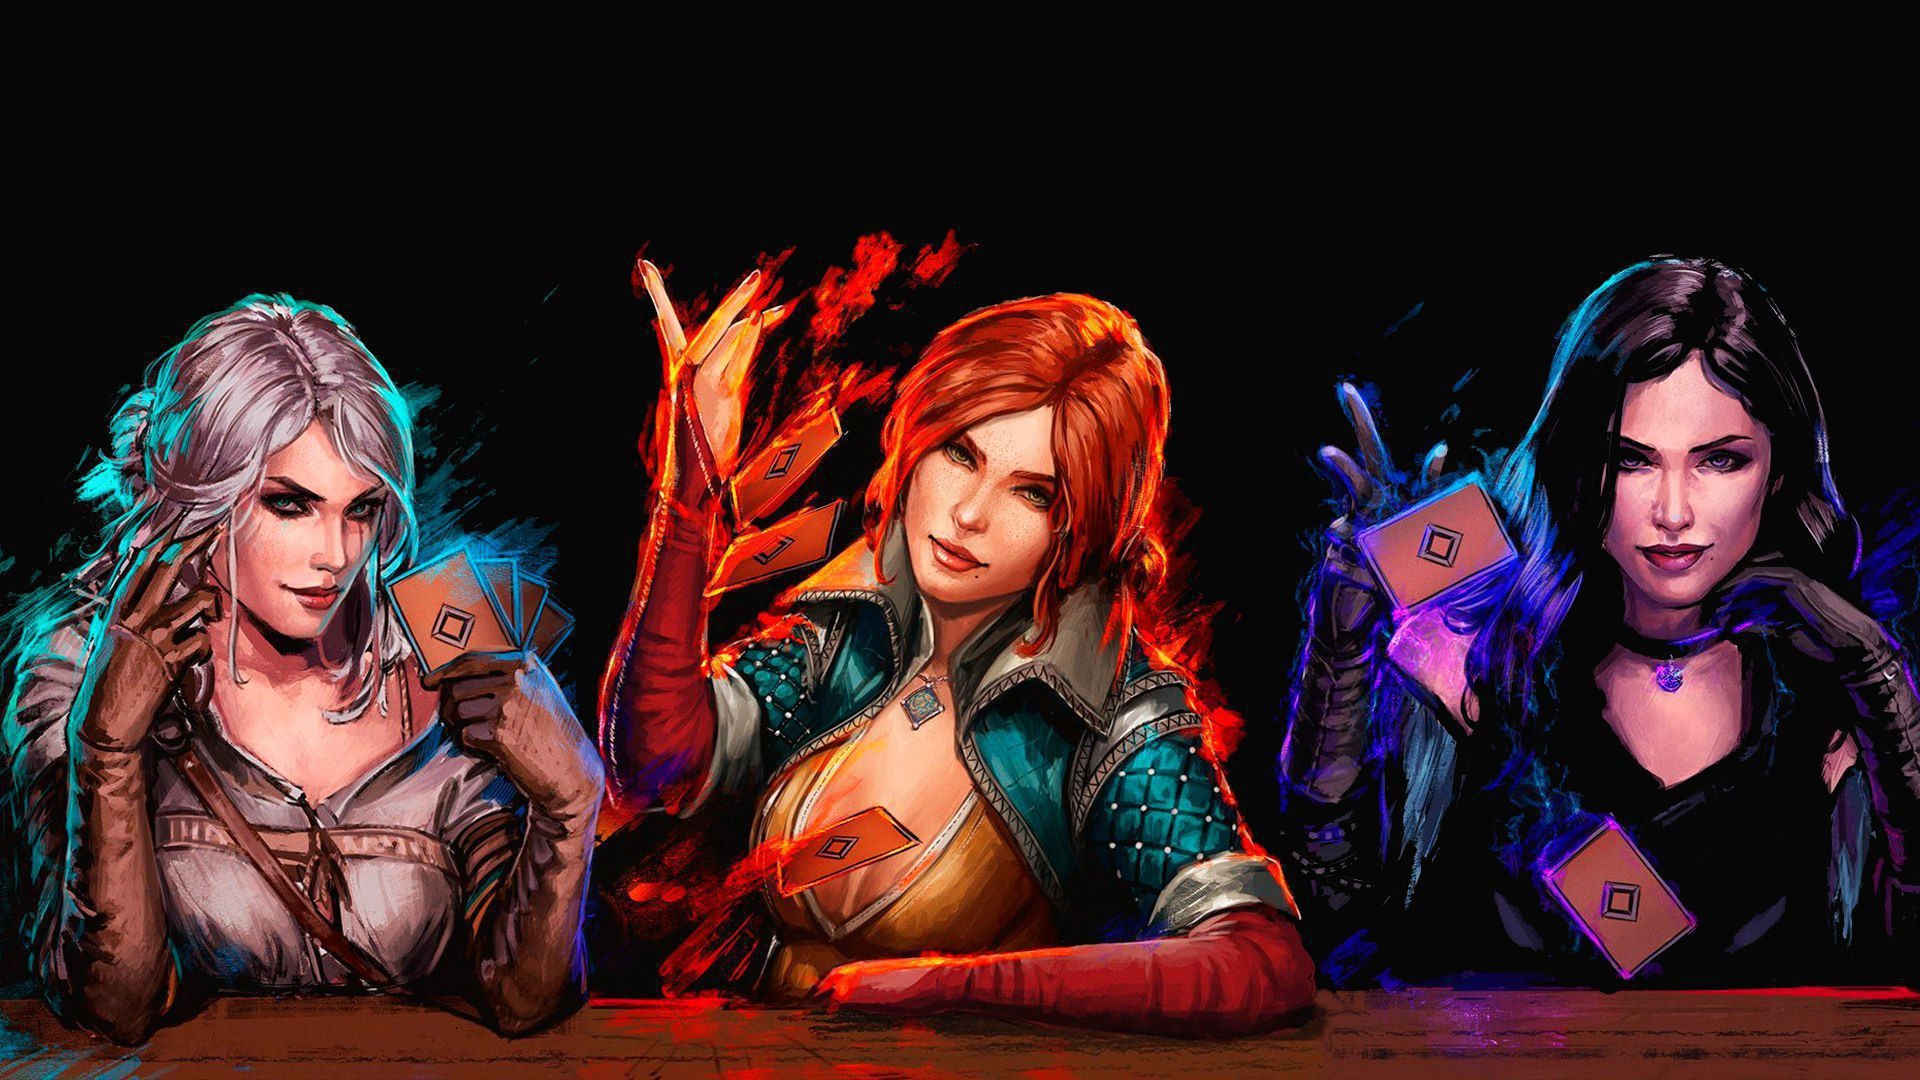 Gwent The Witcher Card Game Computer Wallpaper